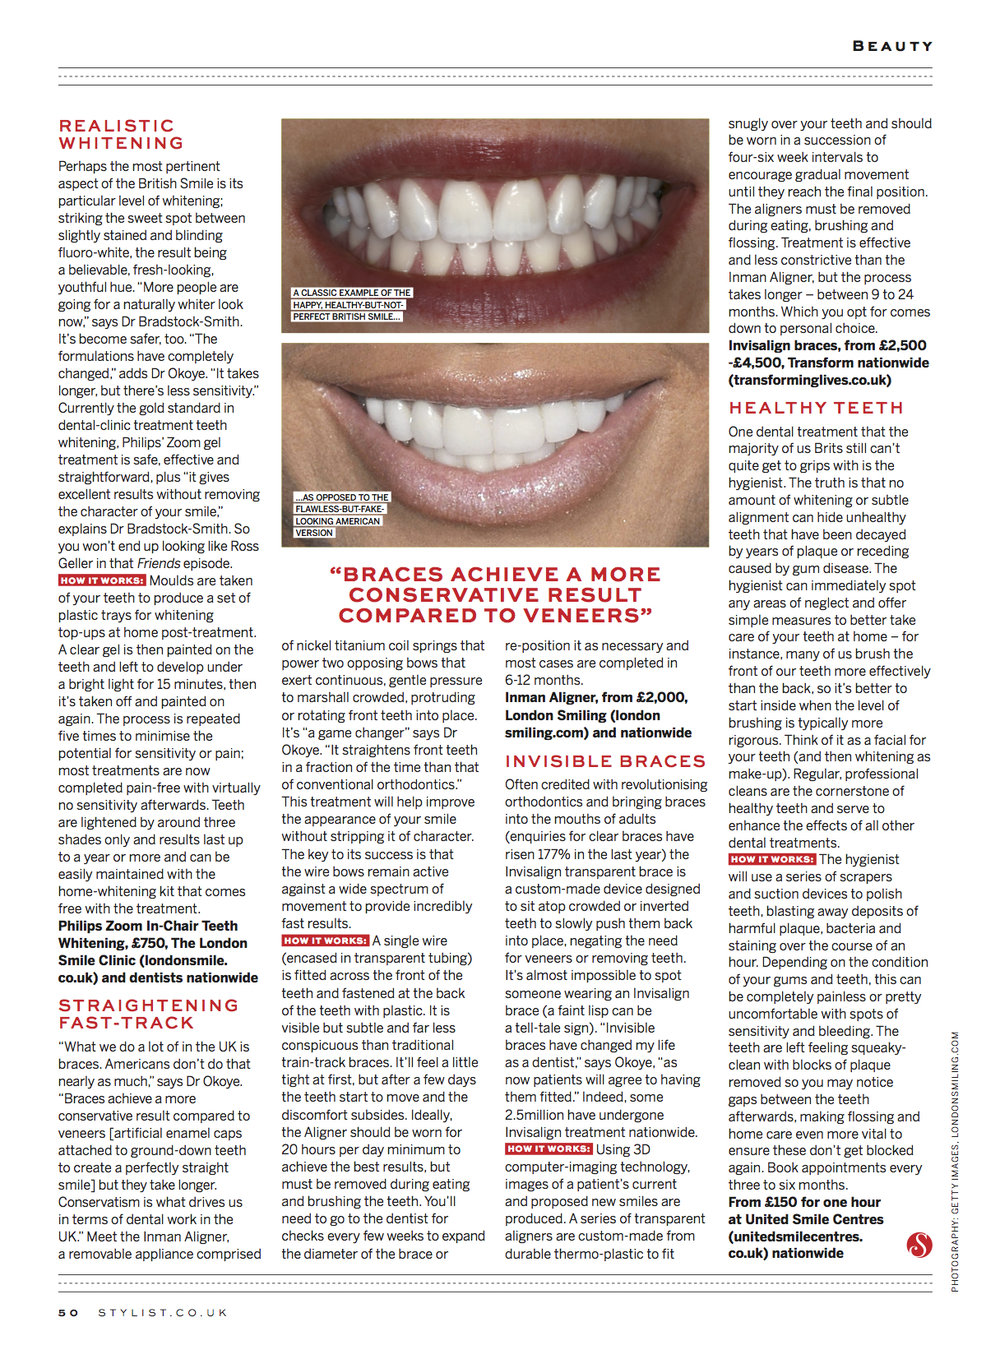 244 TEETH WHITENING - Beauty Column 3.jpg